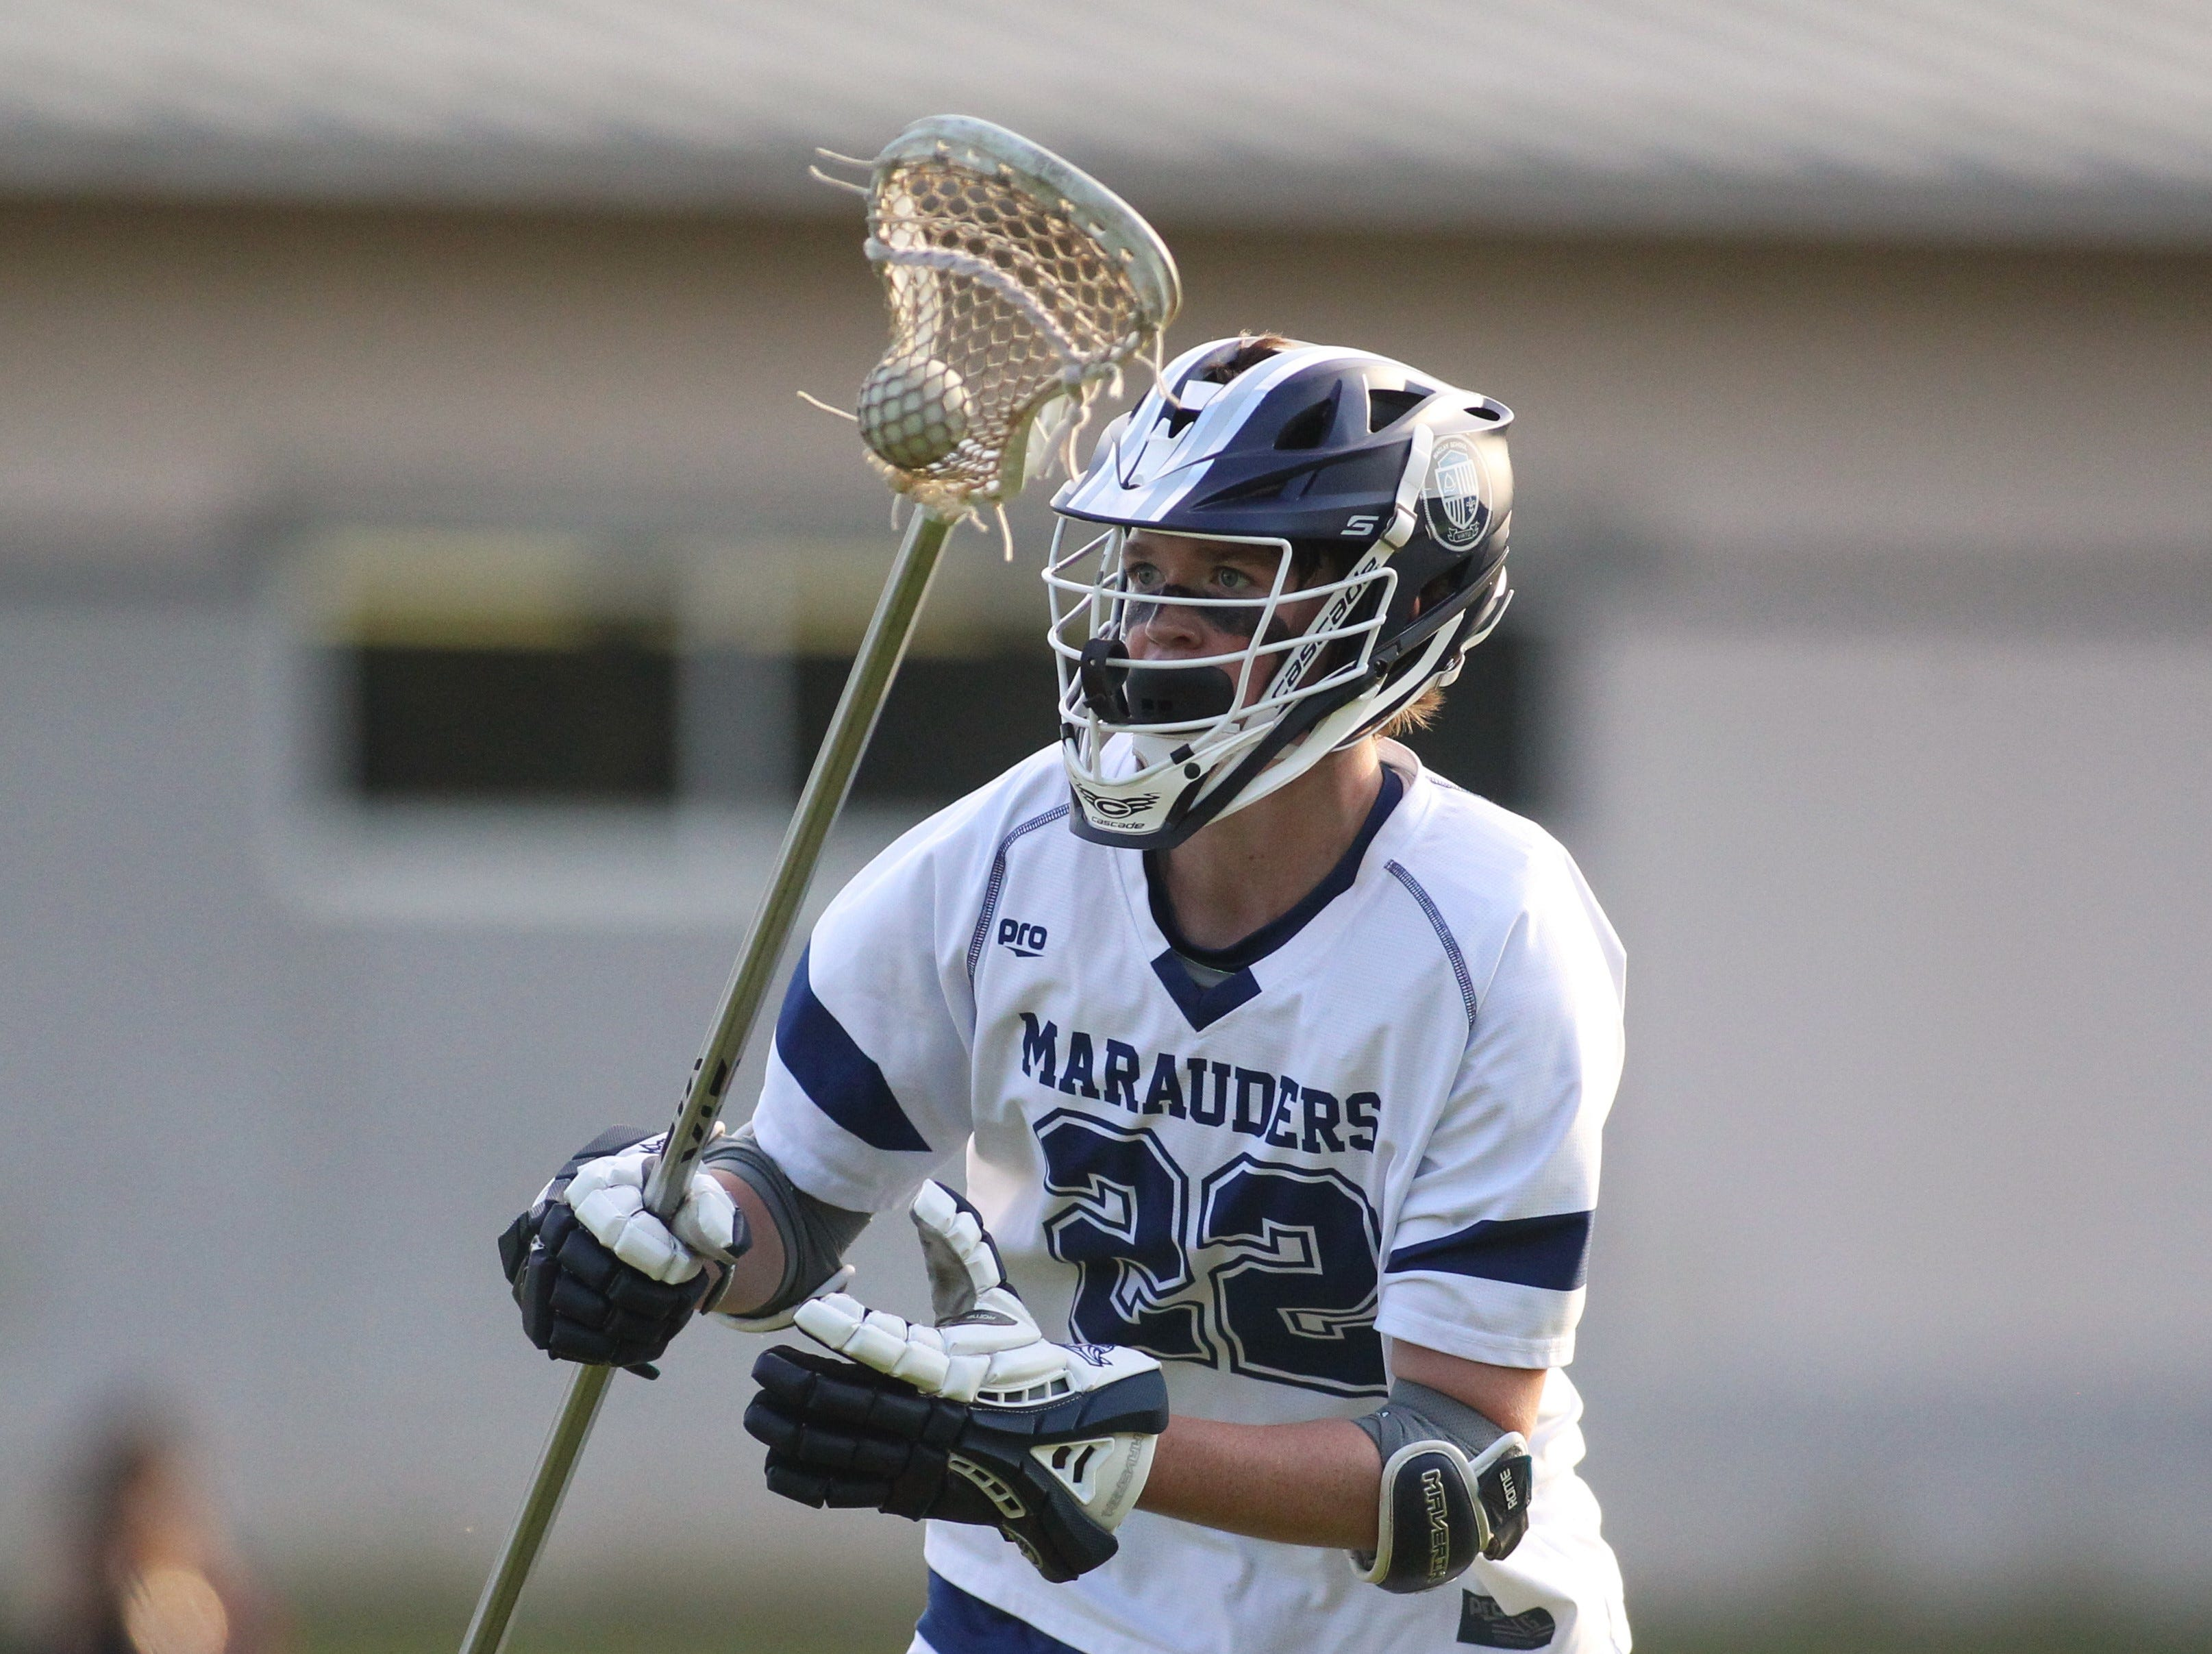 Maclay defender Connor Chason looks for an outlet pass as the Marauders' lacrosse team beat Leon 15-5 on their annual Military Appreciation Night on March 12, 2019.